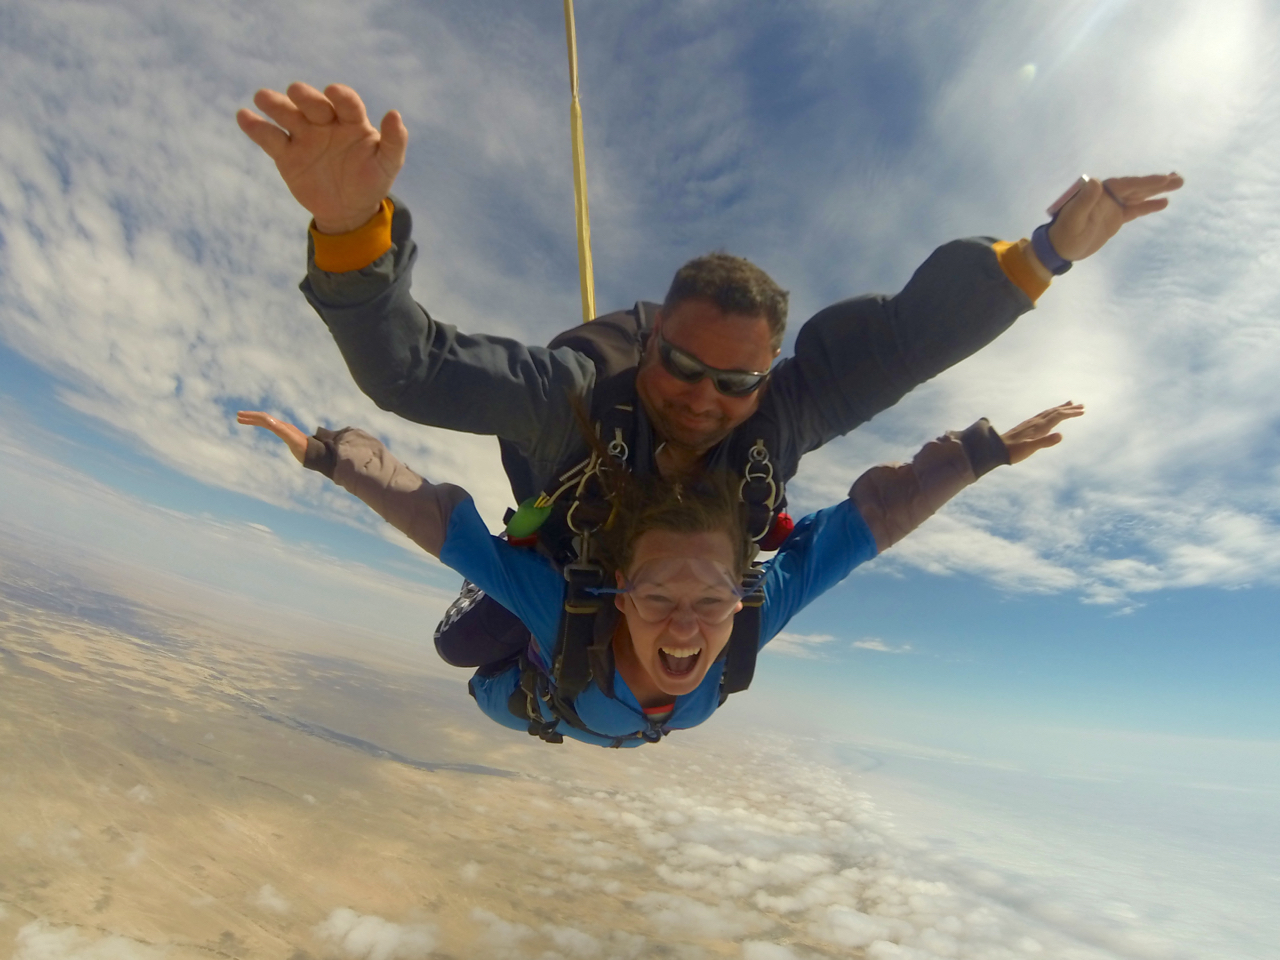 skydiving me 4.jpg